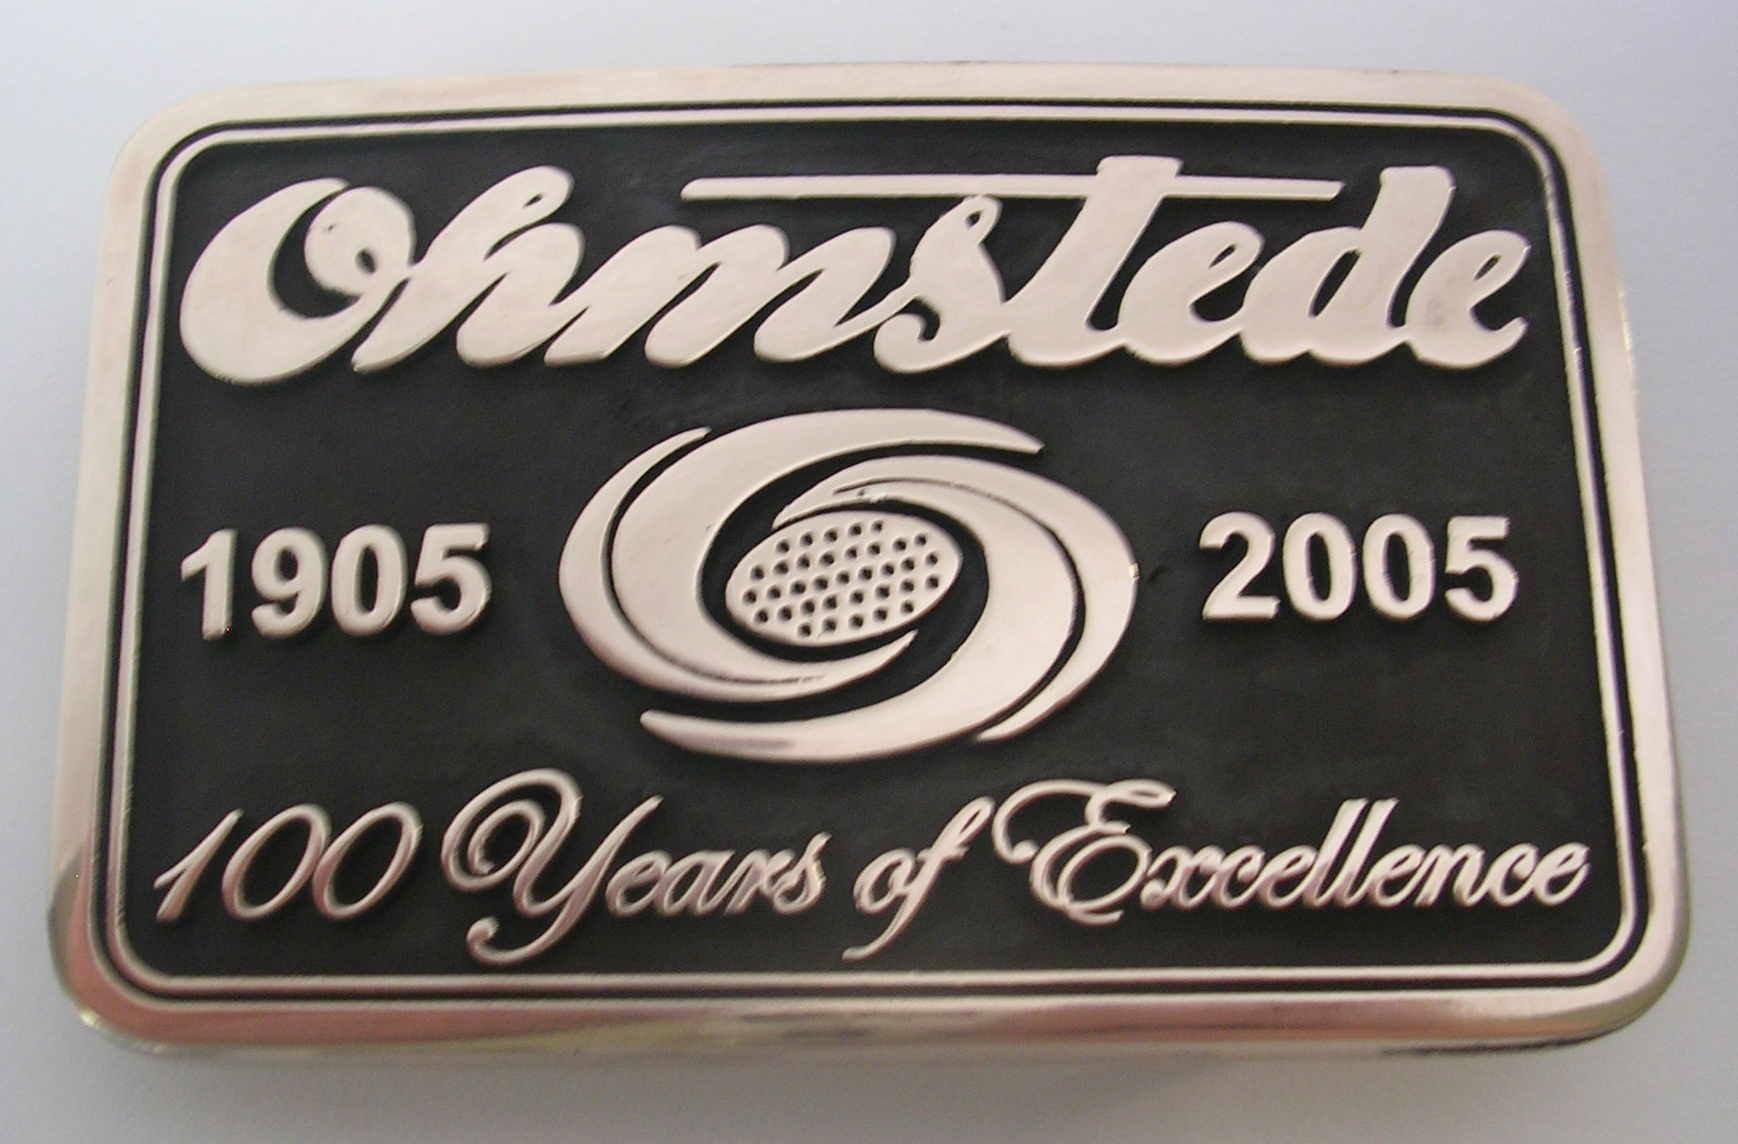 Ohmstede Belt Buckle